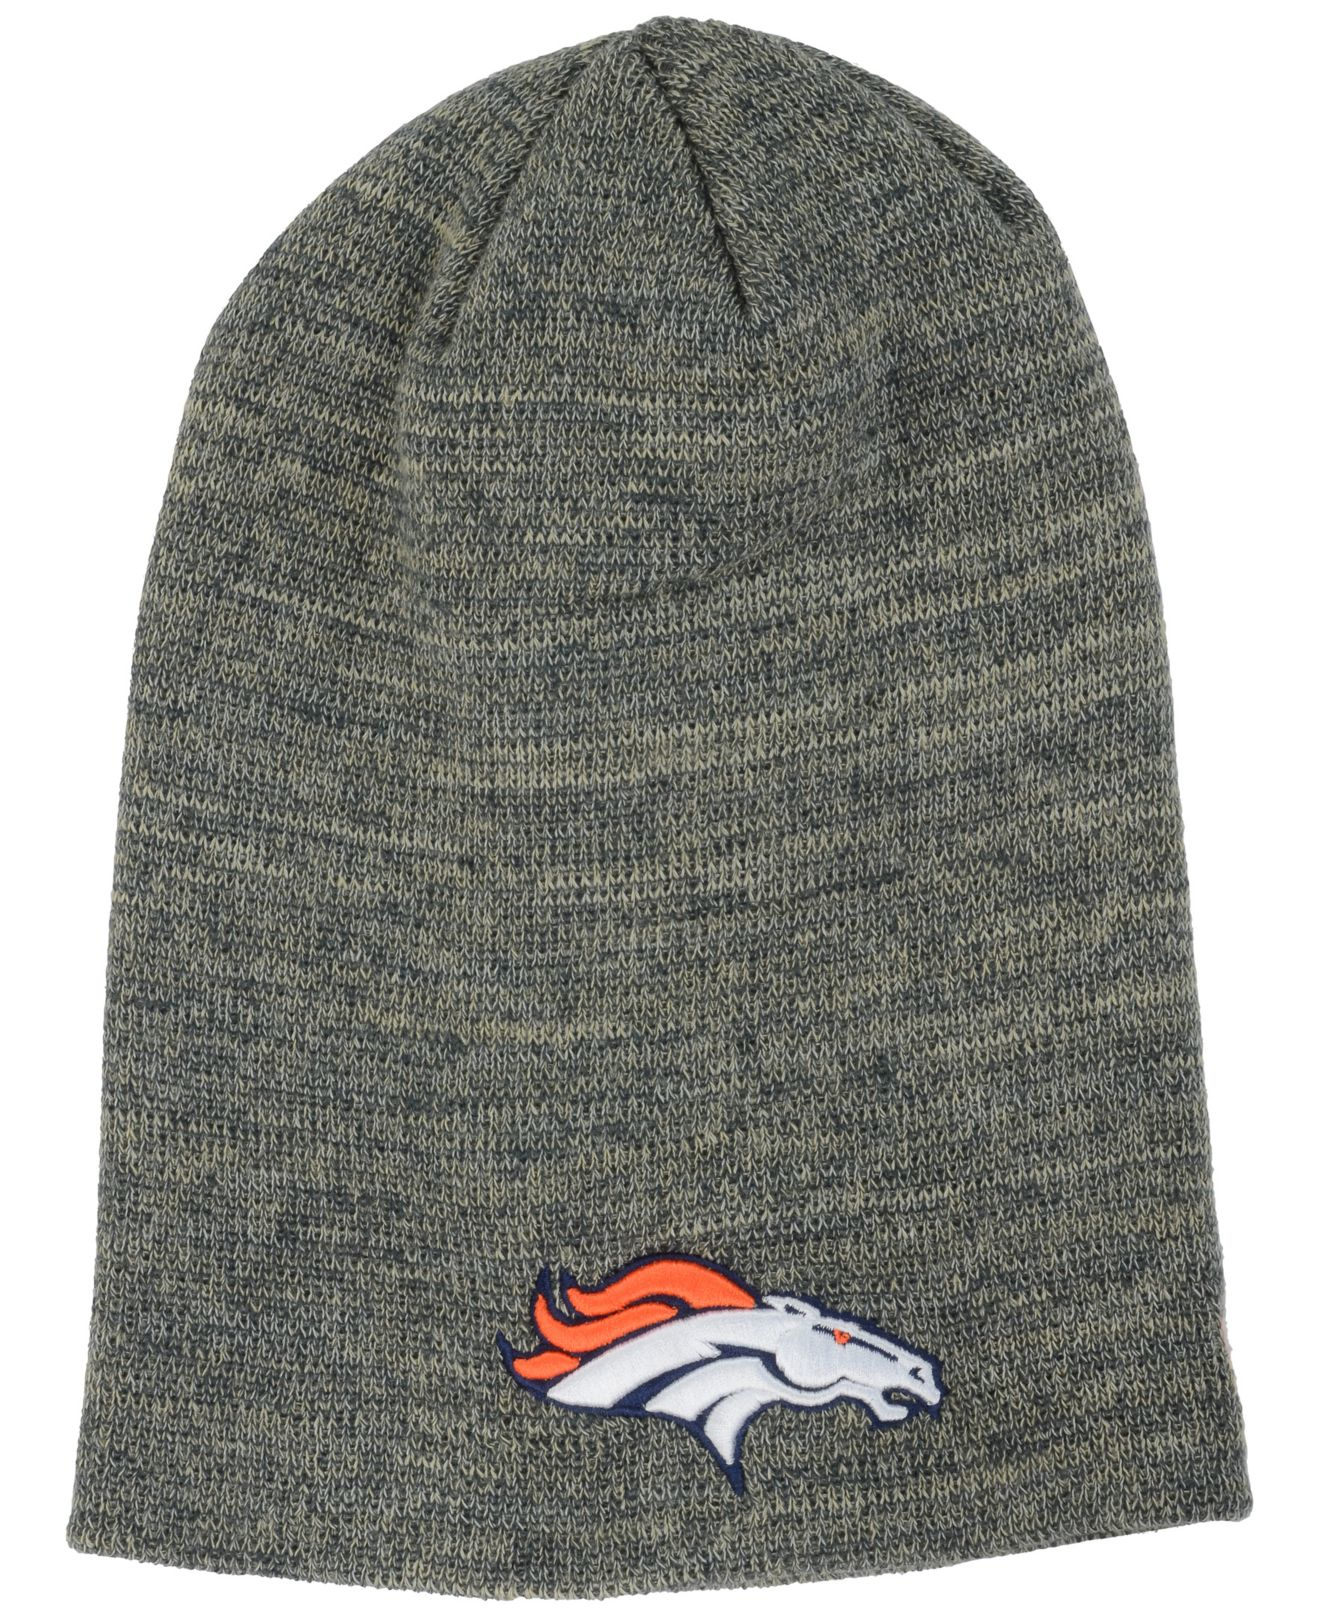 f1275d7a ... italy lyst ktz denver broncos slouch it knit hat in gray for men 538e9  3474f